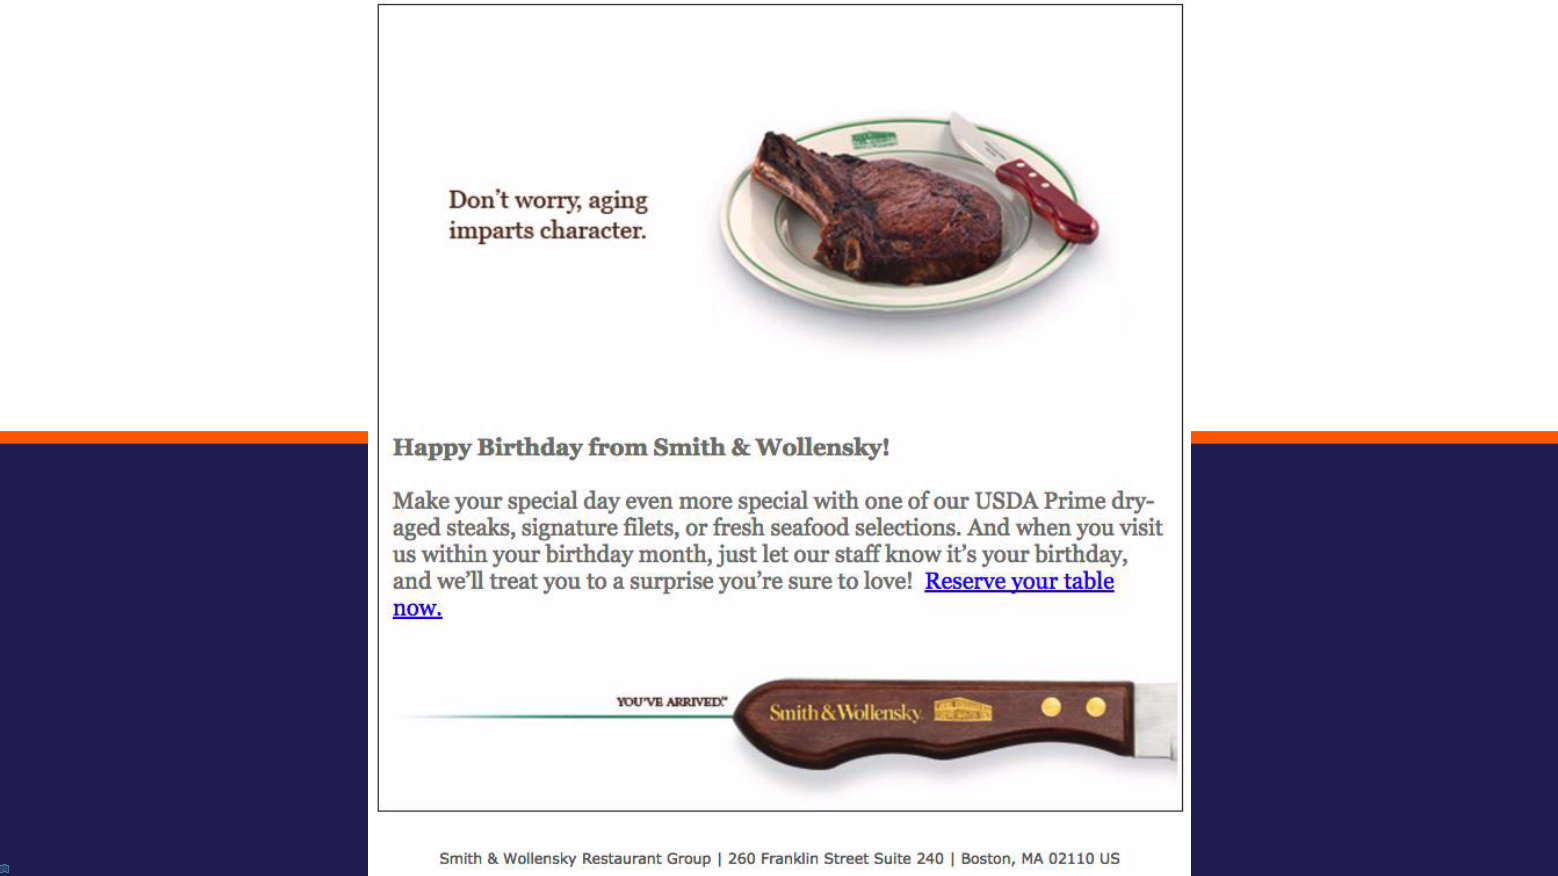 An effective birthday email marketing campaign from a restaurant